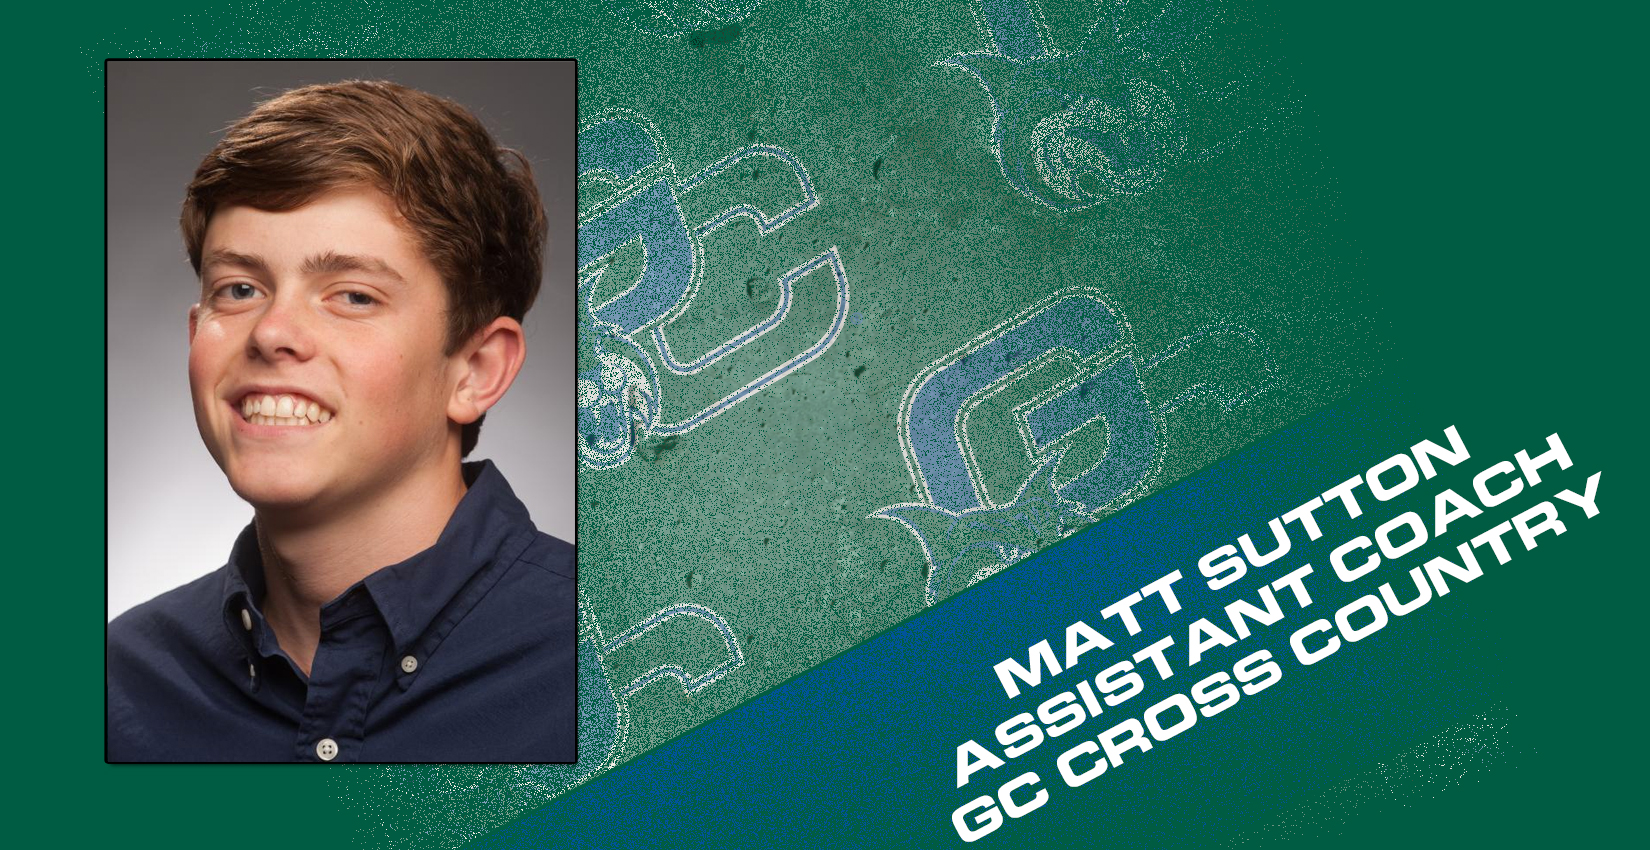 Cross Country Alum Matt Sutton Returns to Program as Assistant Coach